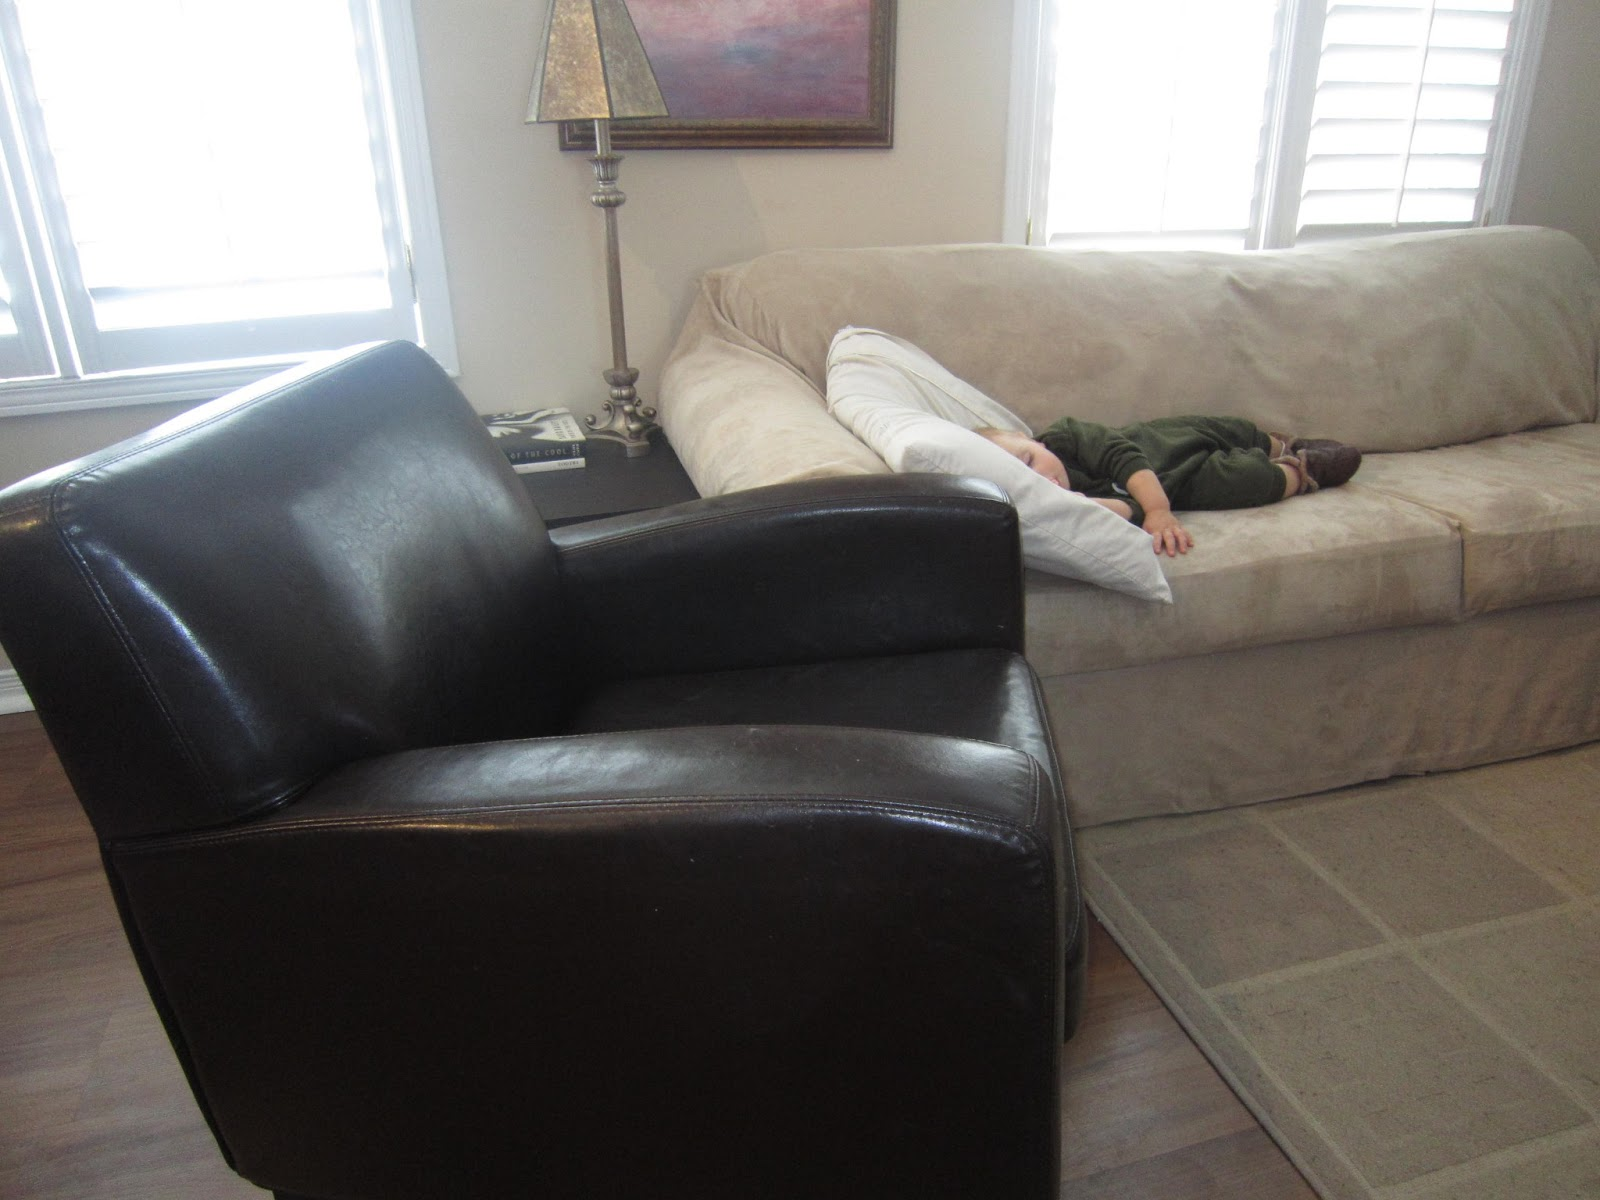 ikea casual chairs folding cheap little townhome love my home